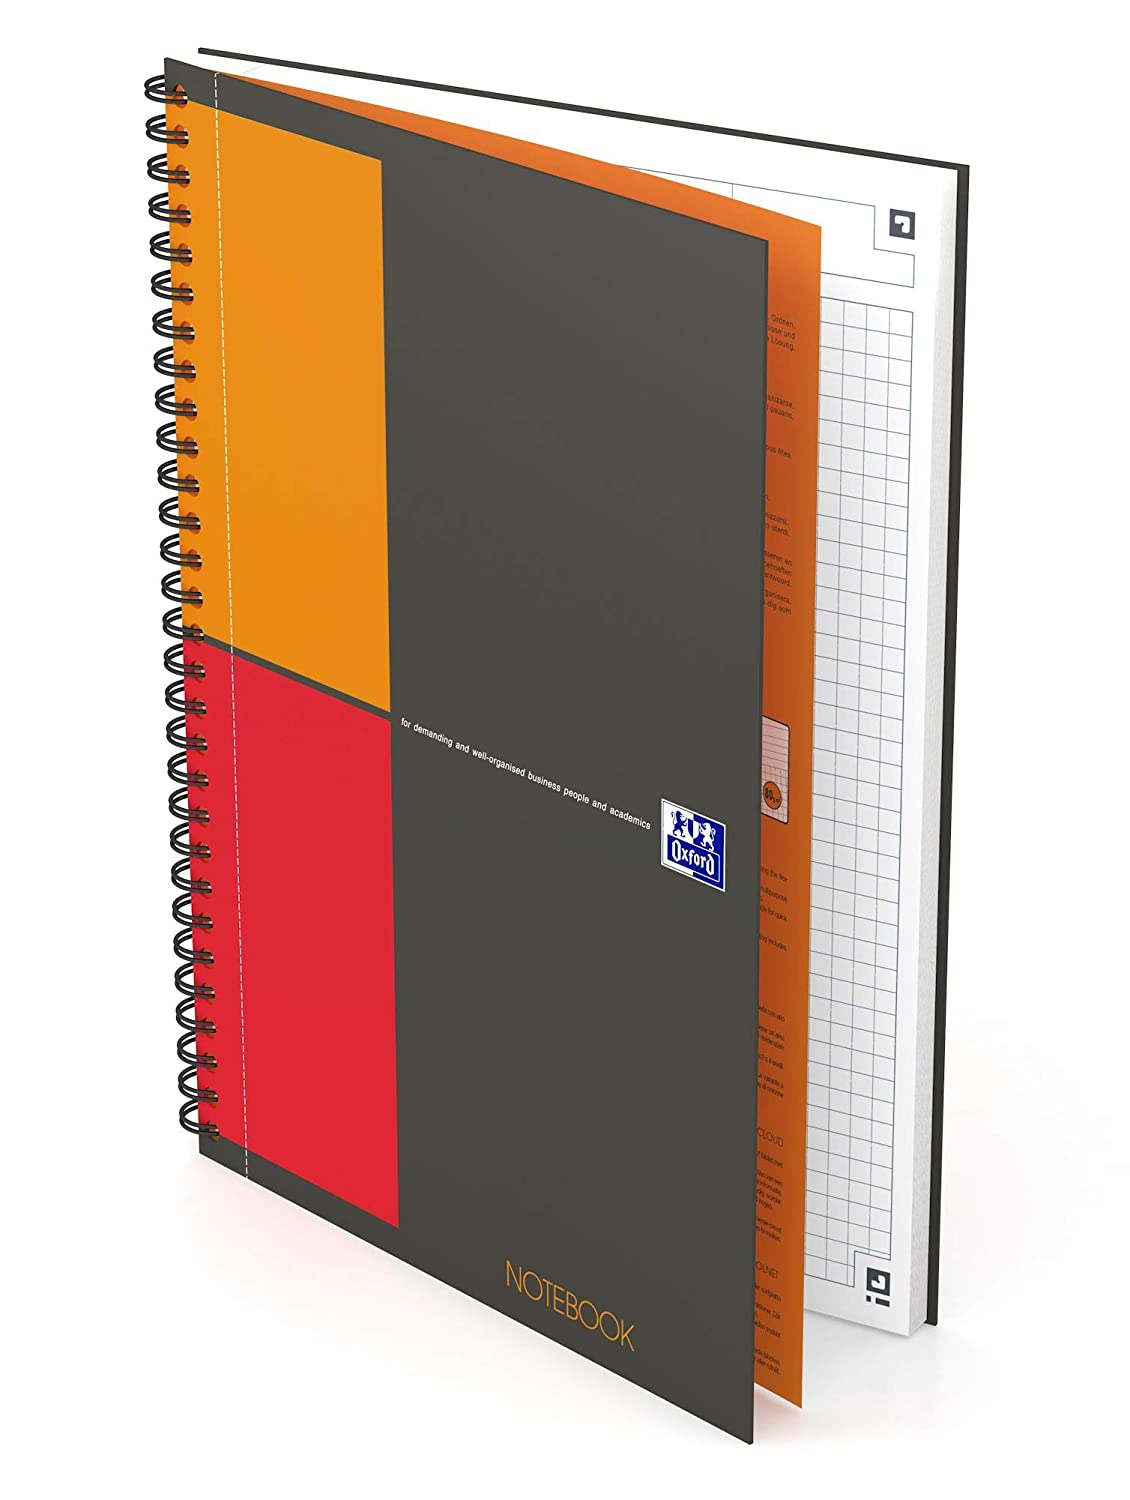 Amazon.com : Oxford International - Pack of 5 Notebooks ...